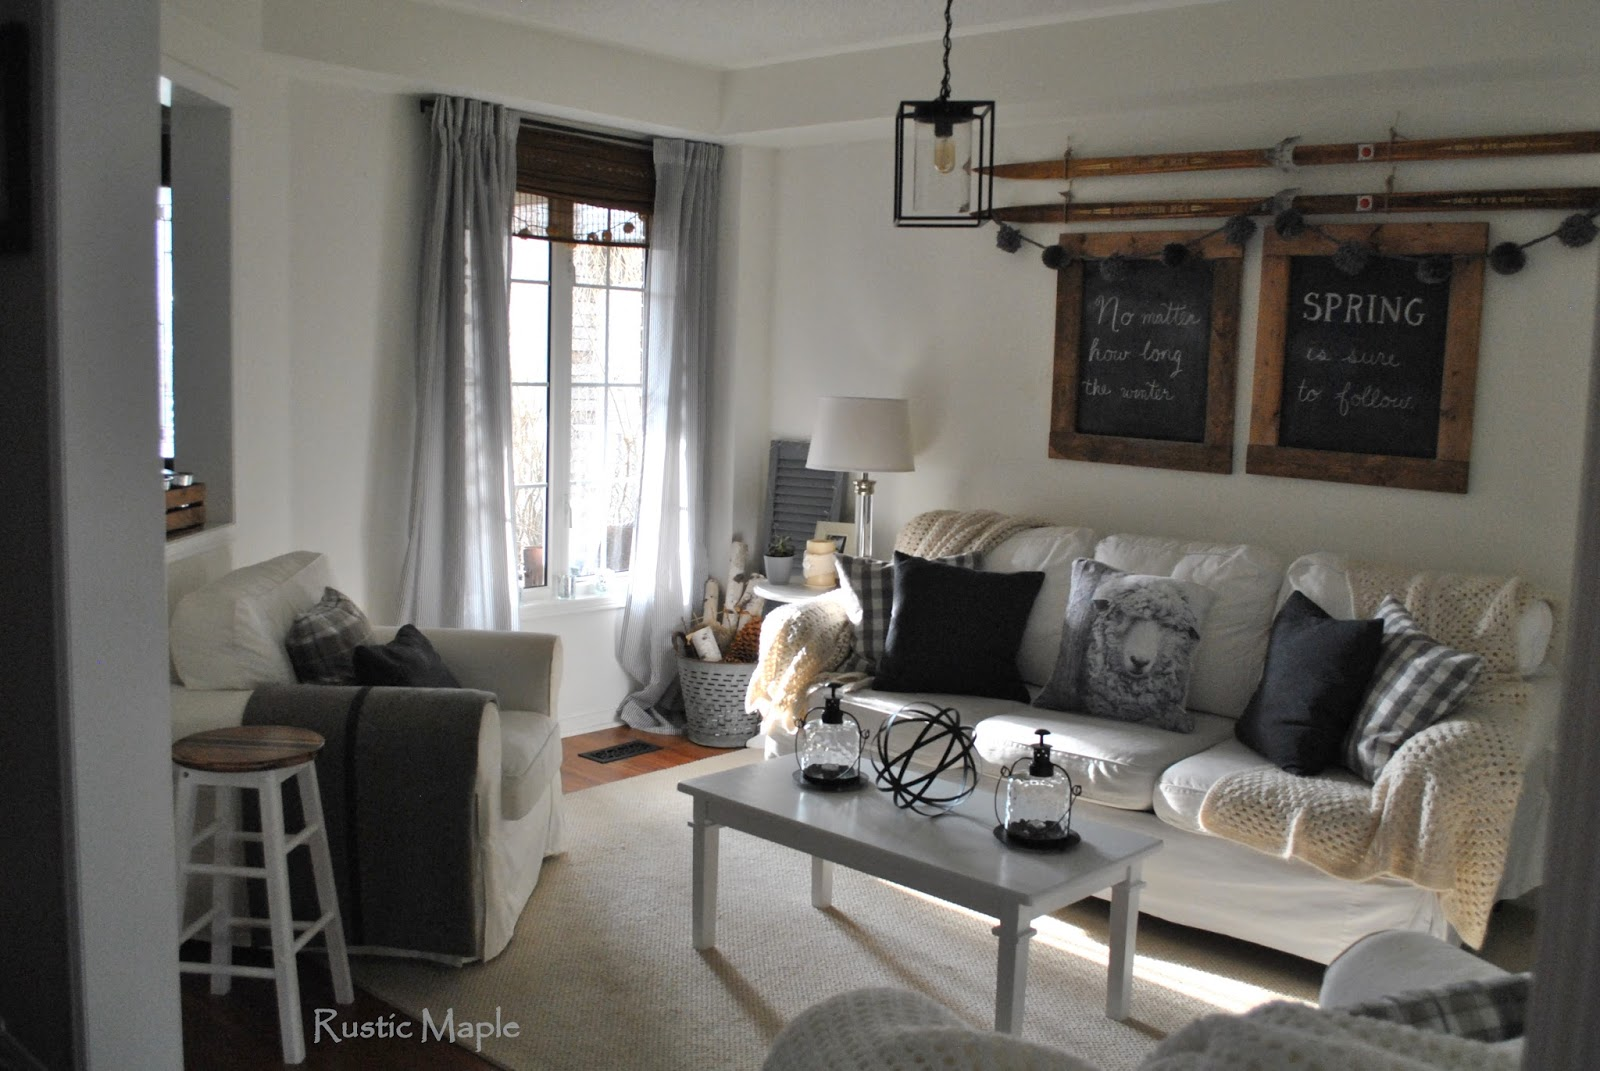 Rustic Maple White And Grey With Wood Winter Living Room